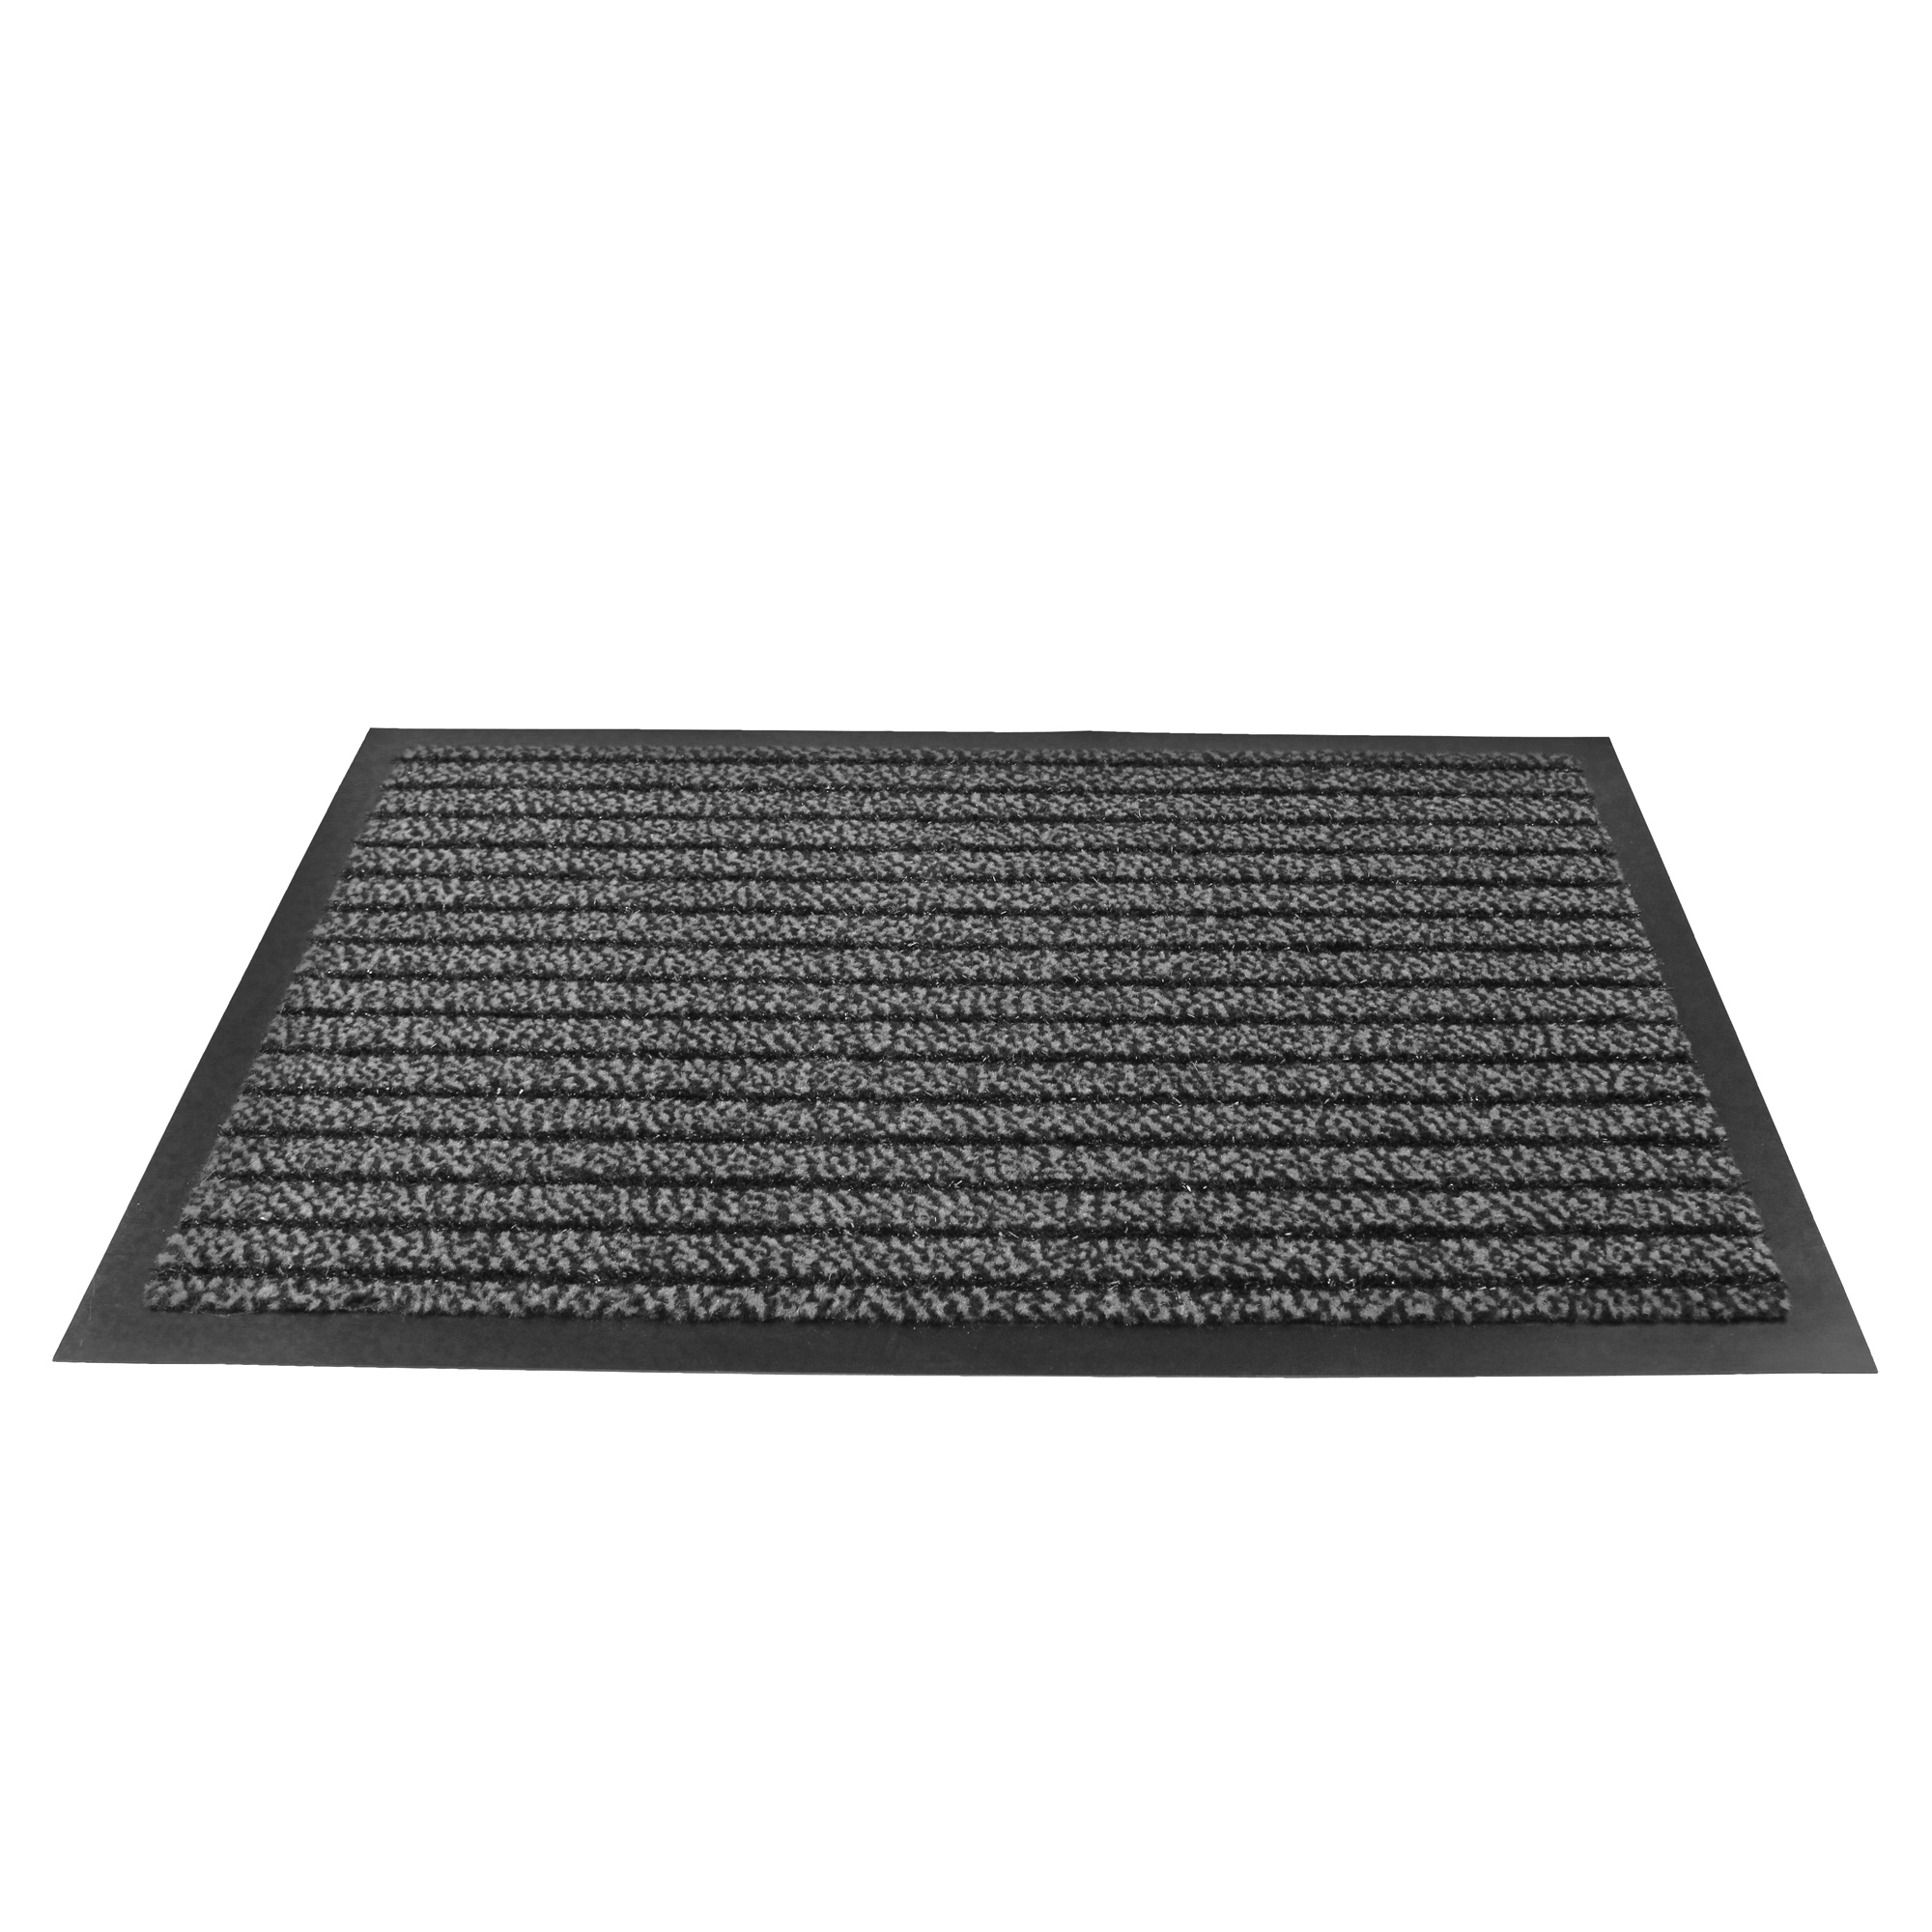 Indoor Doortex Ultimat Entrance Mat Indoor Use Nylon Monofilaments 900x1500mm Grey Ref FC490150ULTGR